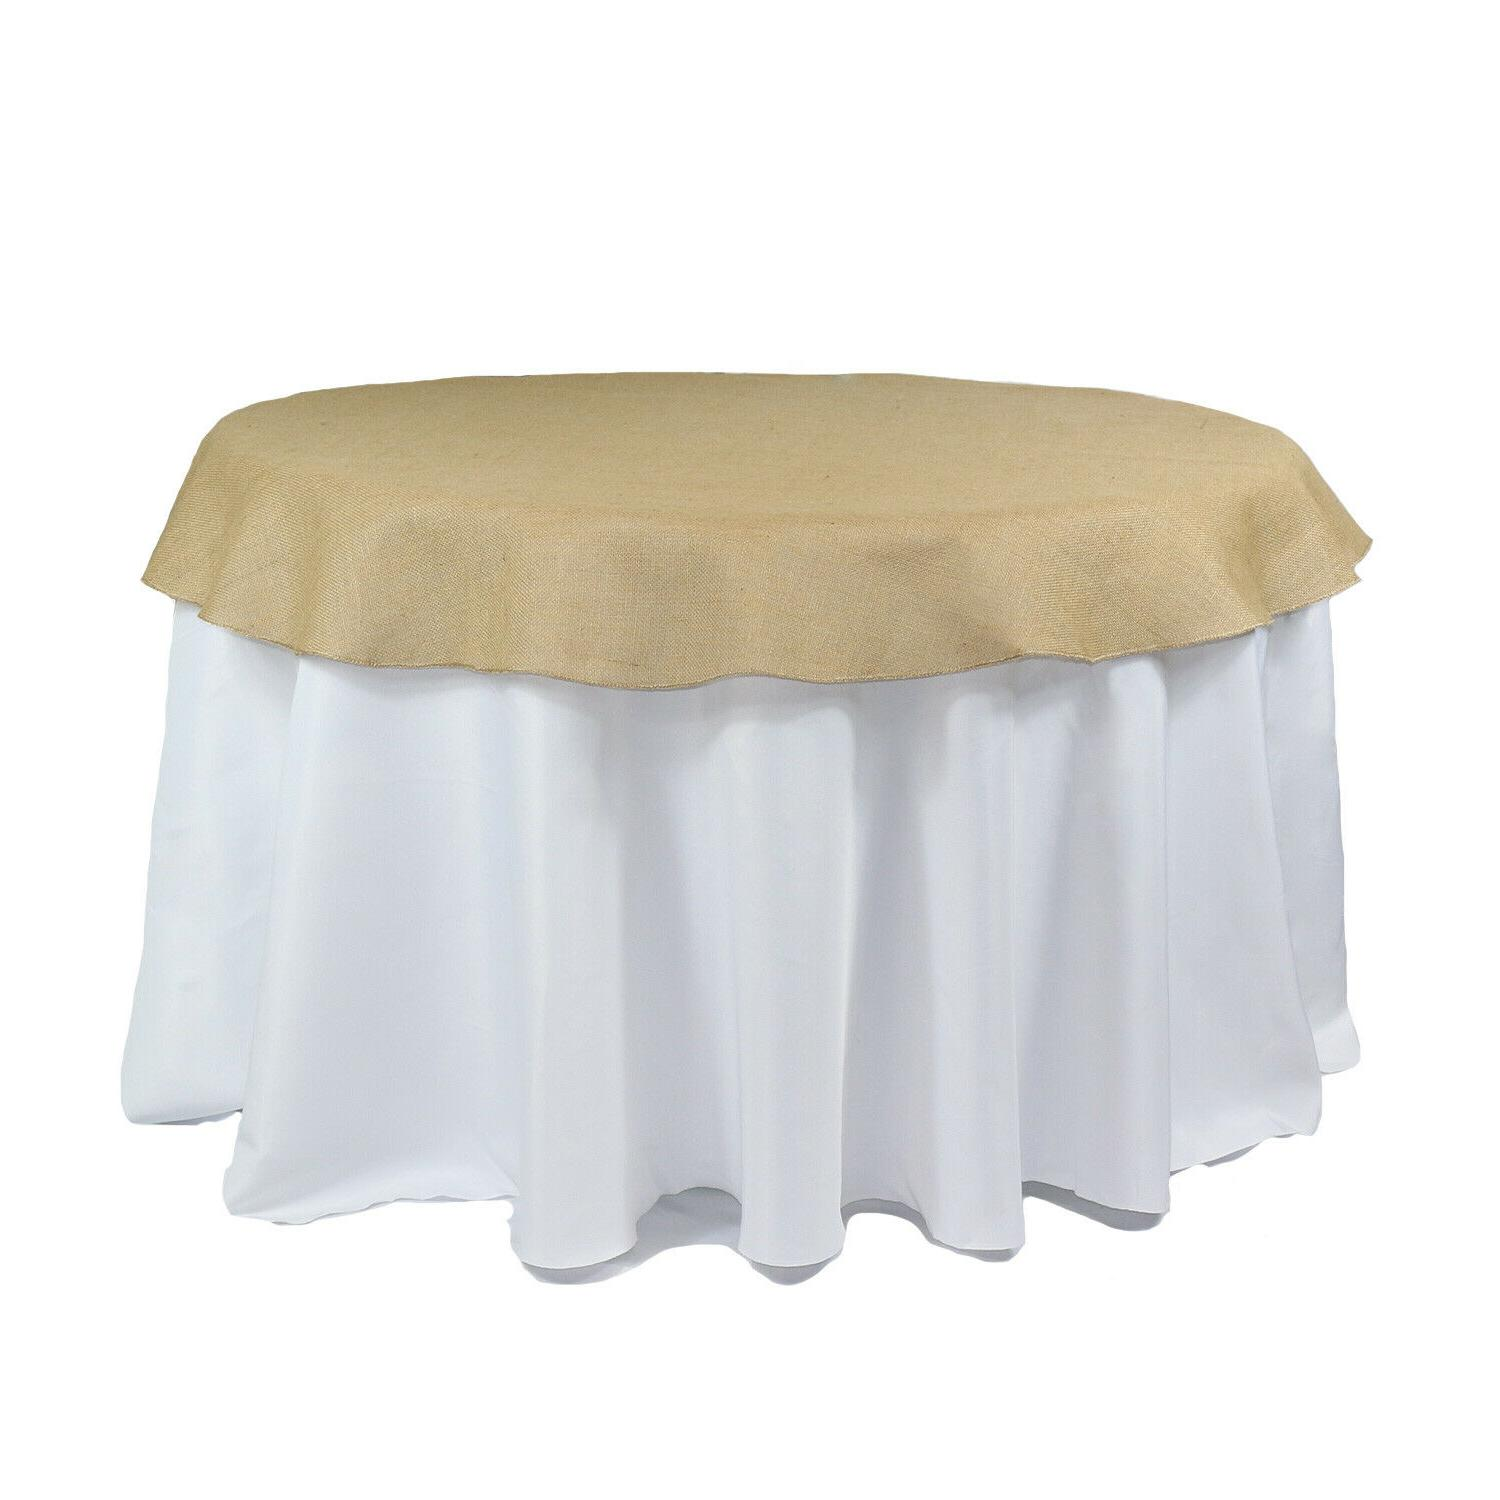 60 Tablecloth